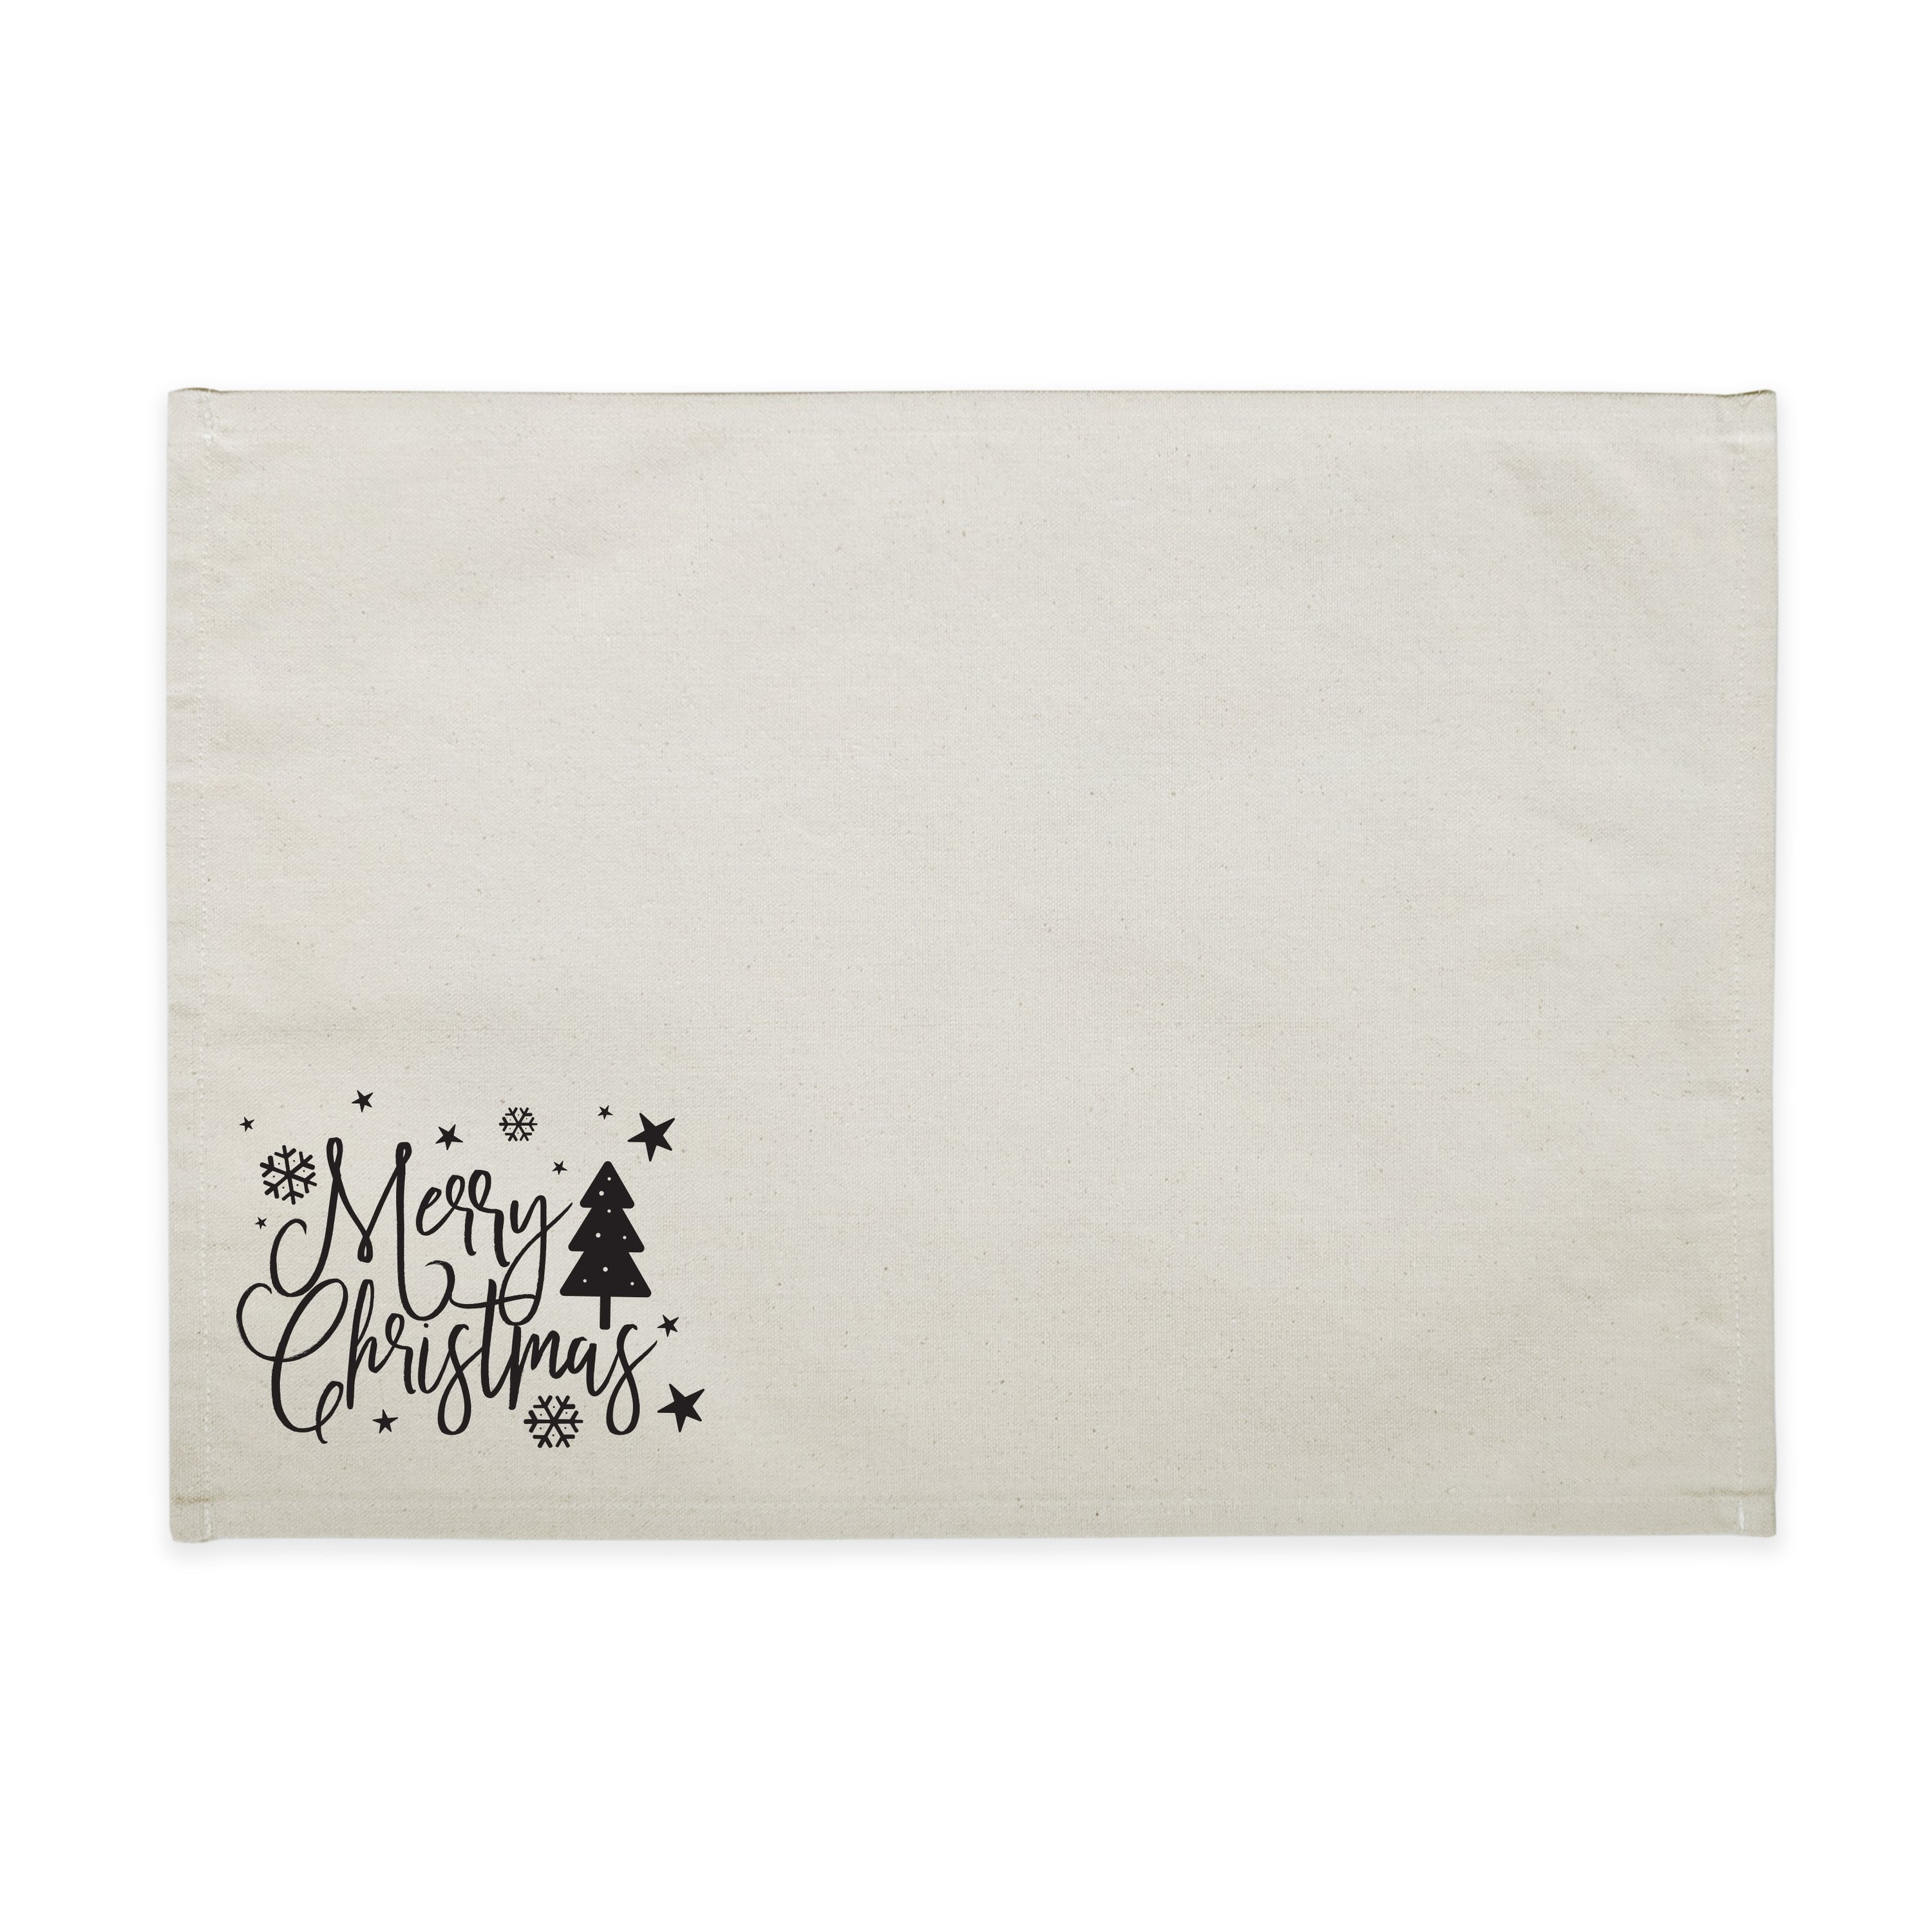 Merry Christmas Cotton Canvas Party Place Mat